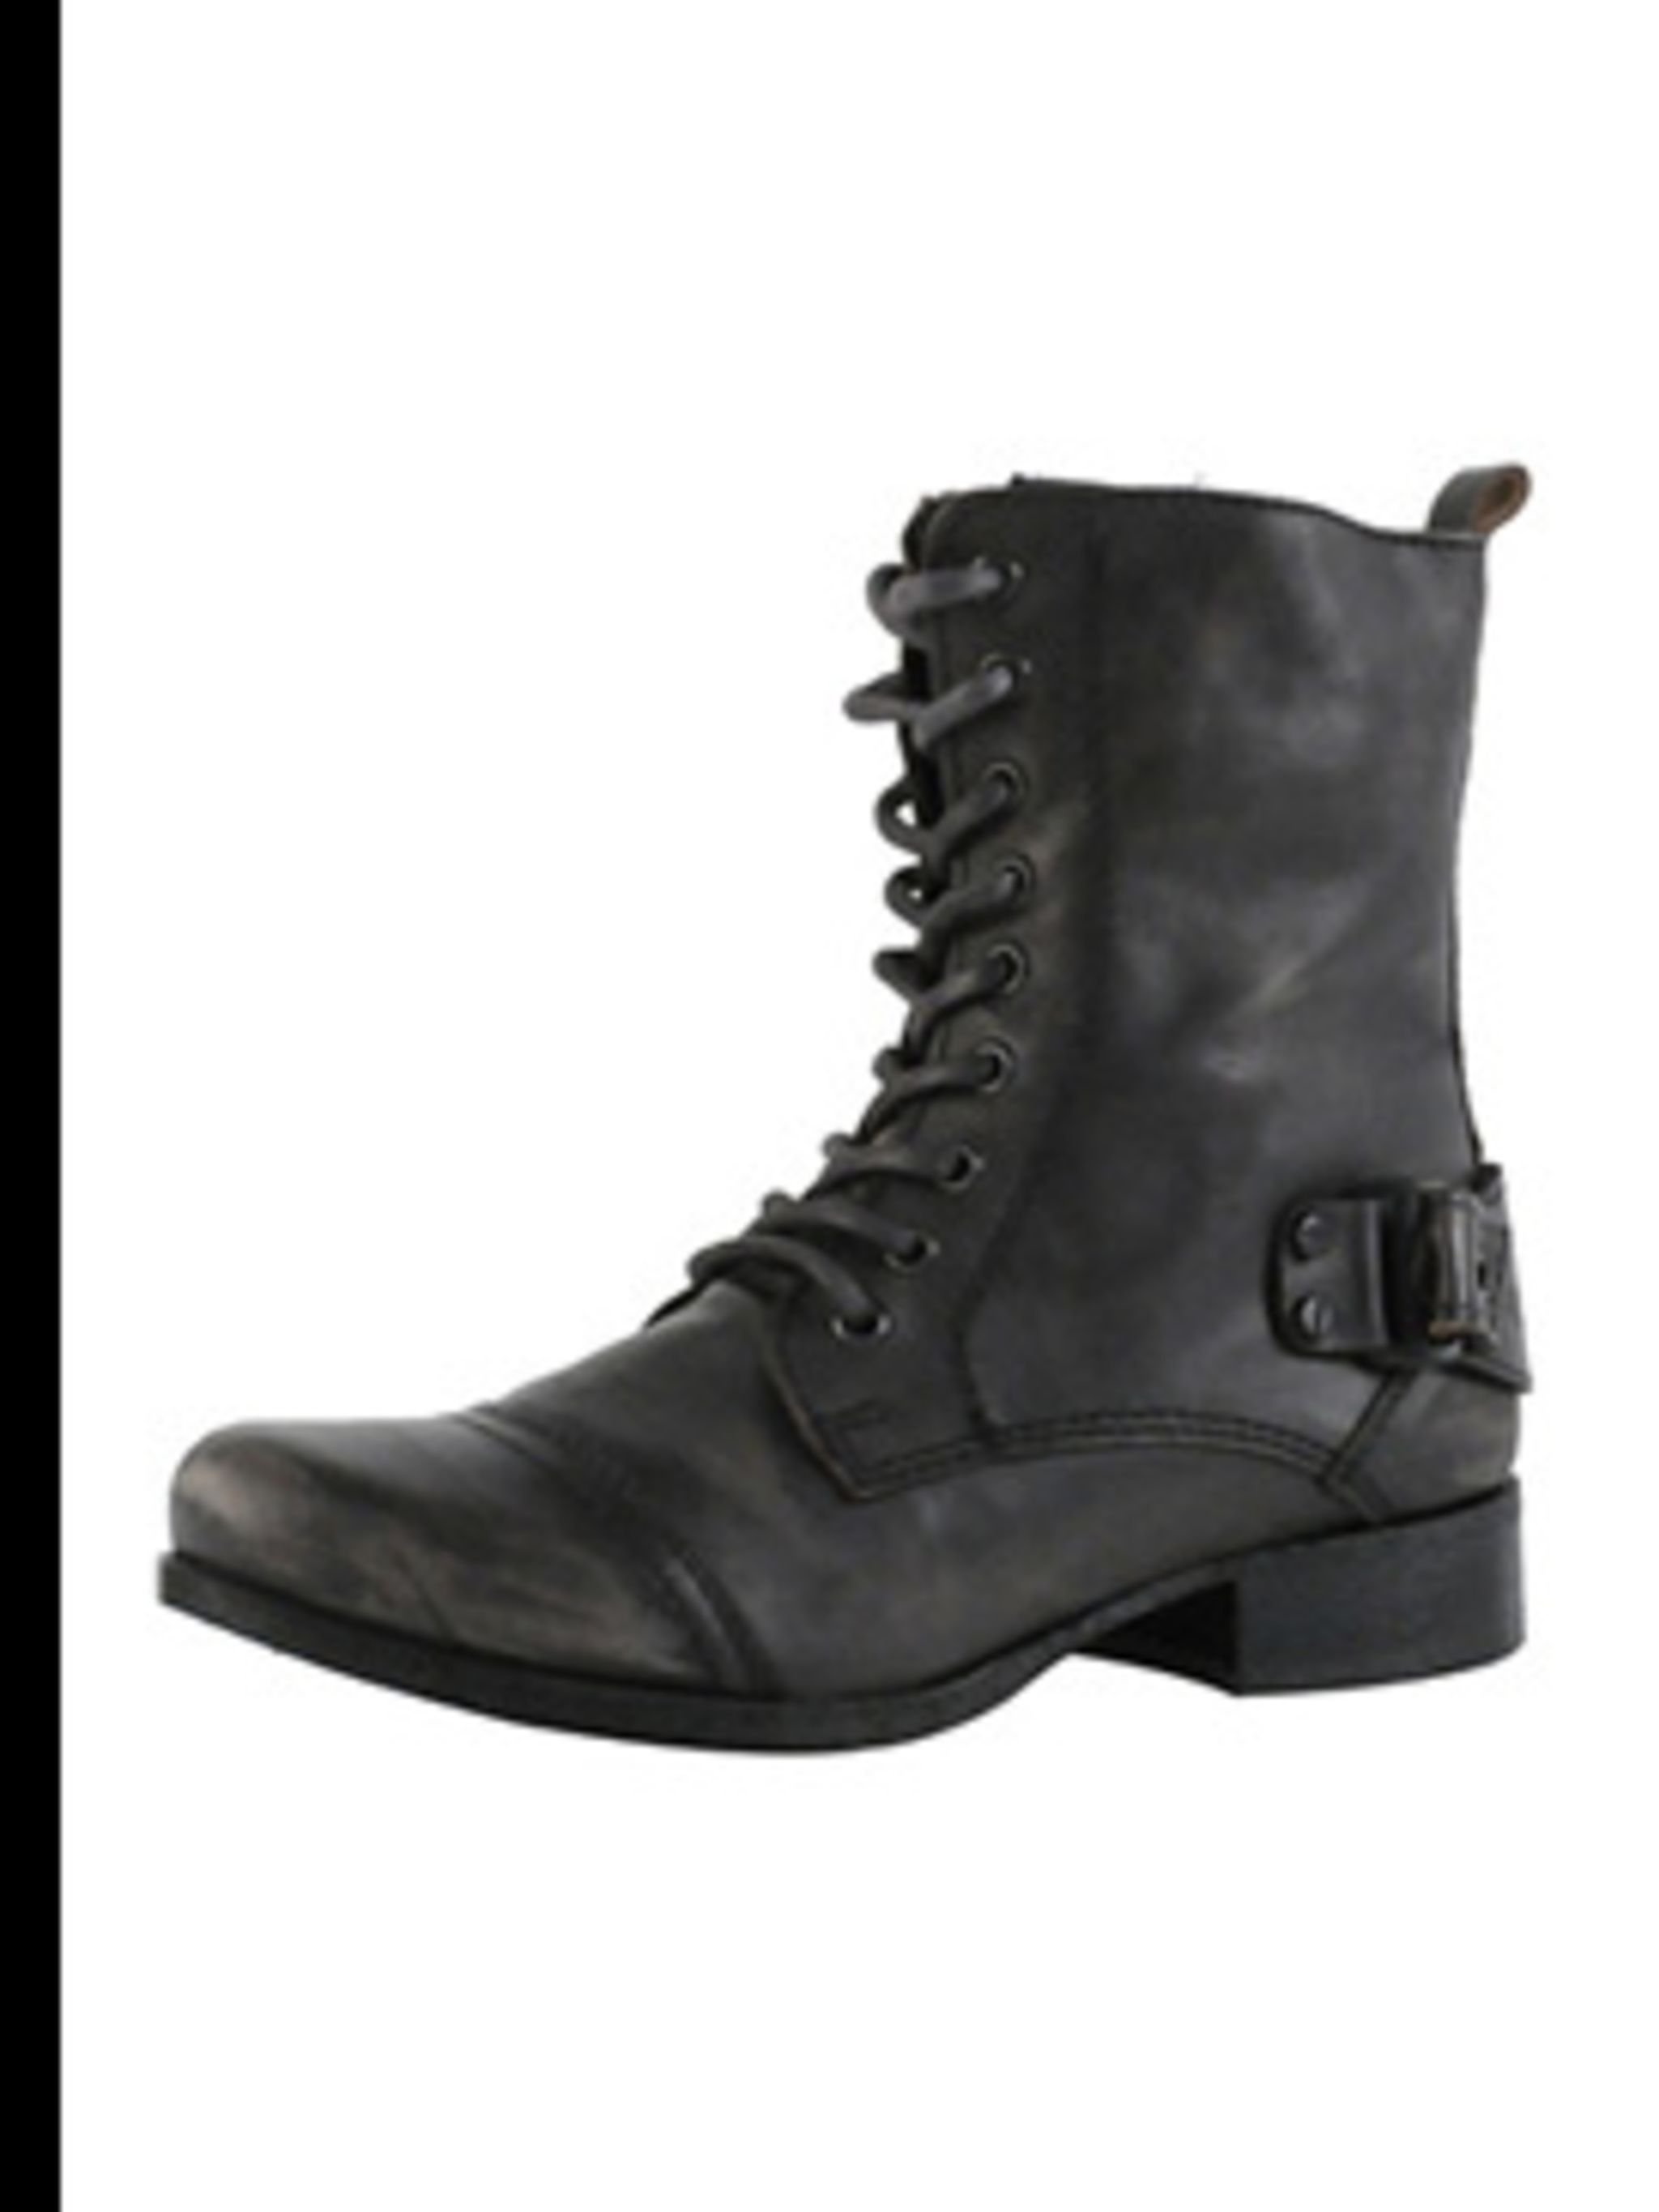 """<p>Lace up boots, £64.99, by <a href=""""http://xml.riverisland.com/flash/content.php"""">River Island</a></p>"""